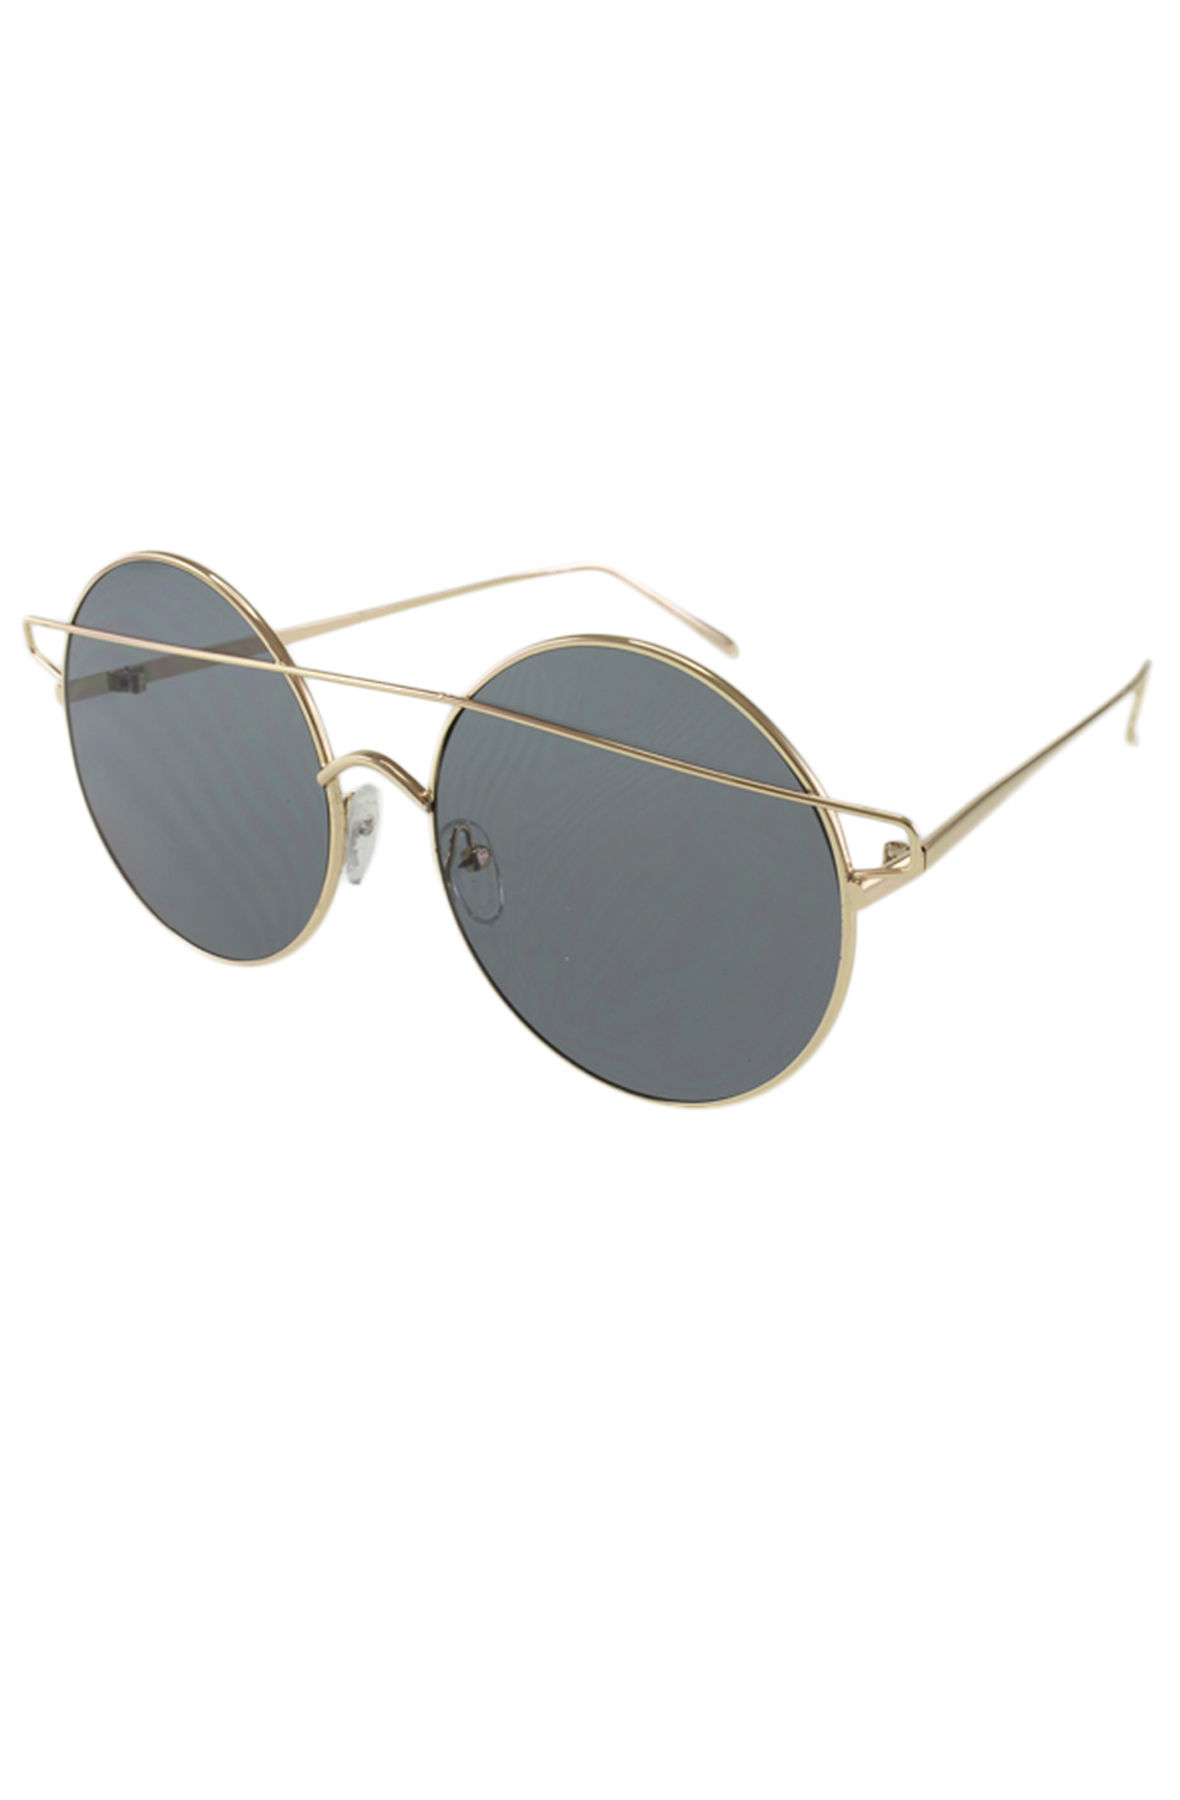 Image of The Meridian Sunglasses in Smoke